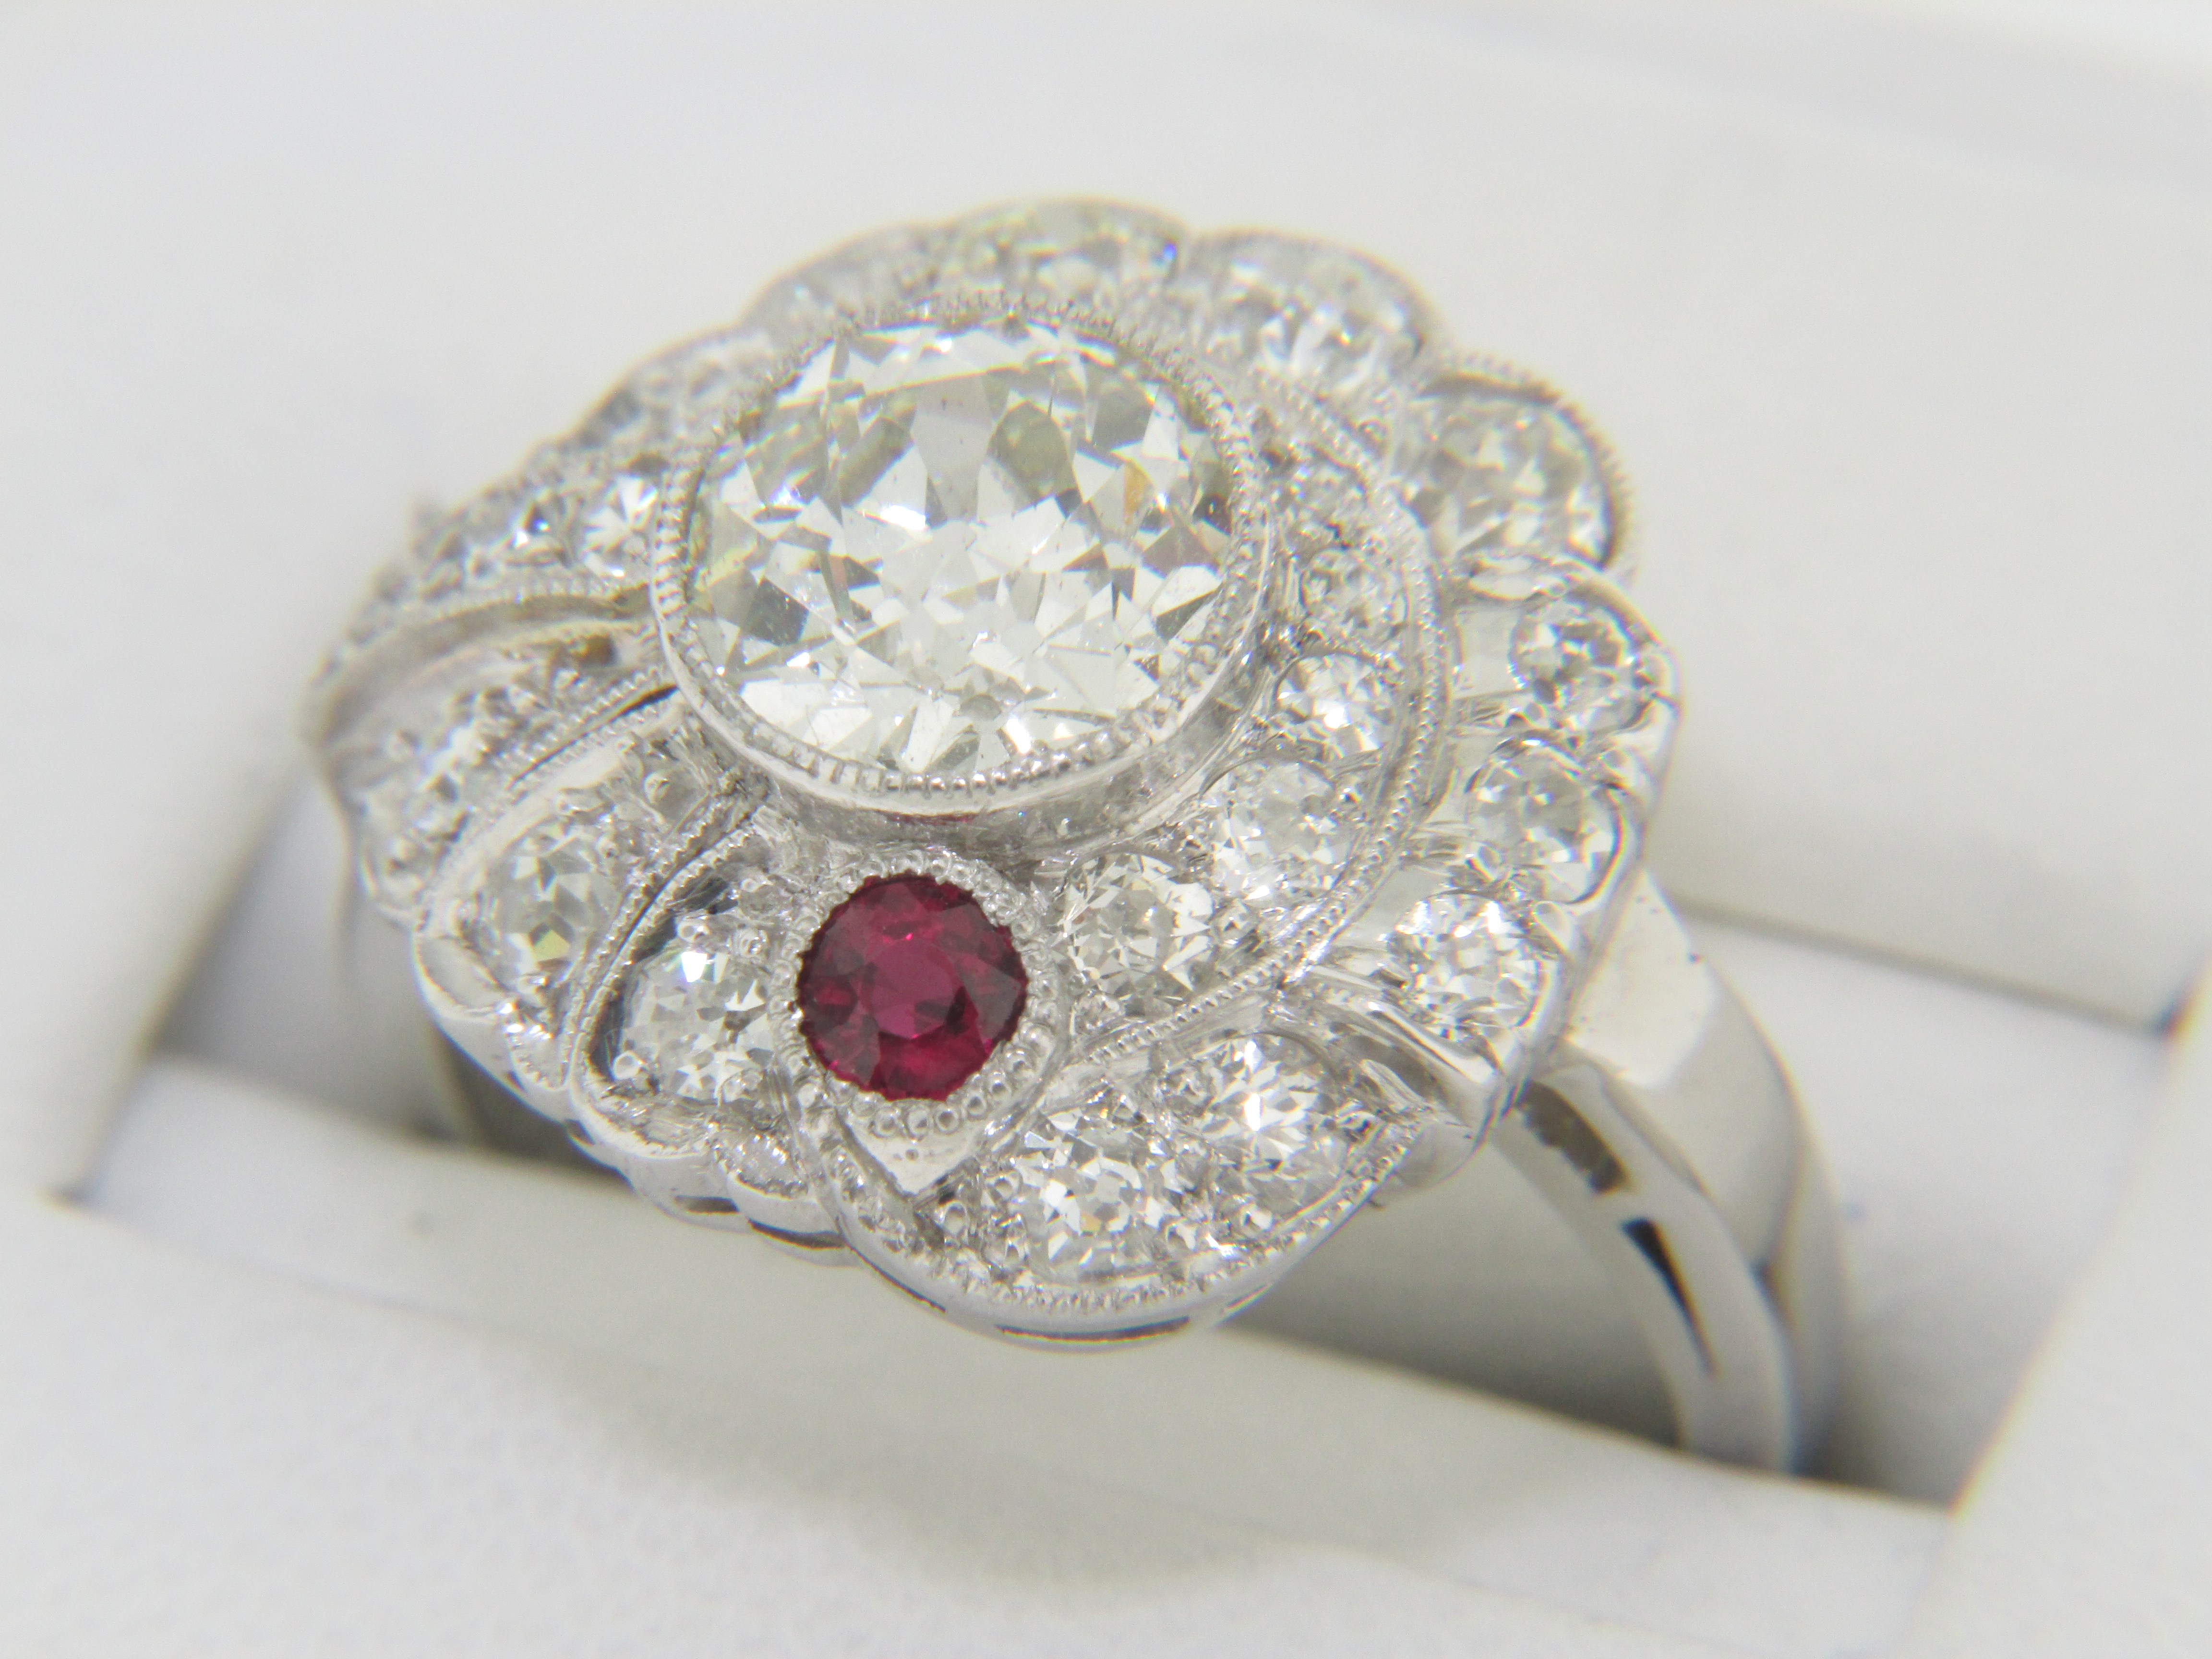 Set Ruby That Measures Approx 325mm In Diameter This Is A Very Unique  And Whimsical Design, A True Work Of Art! The Price Of This Ring Is  $9,60000